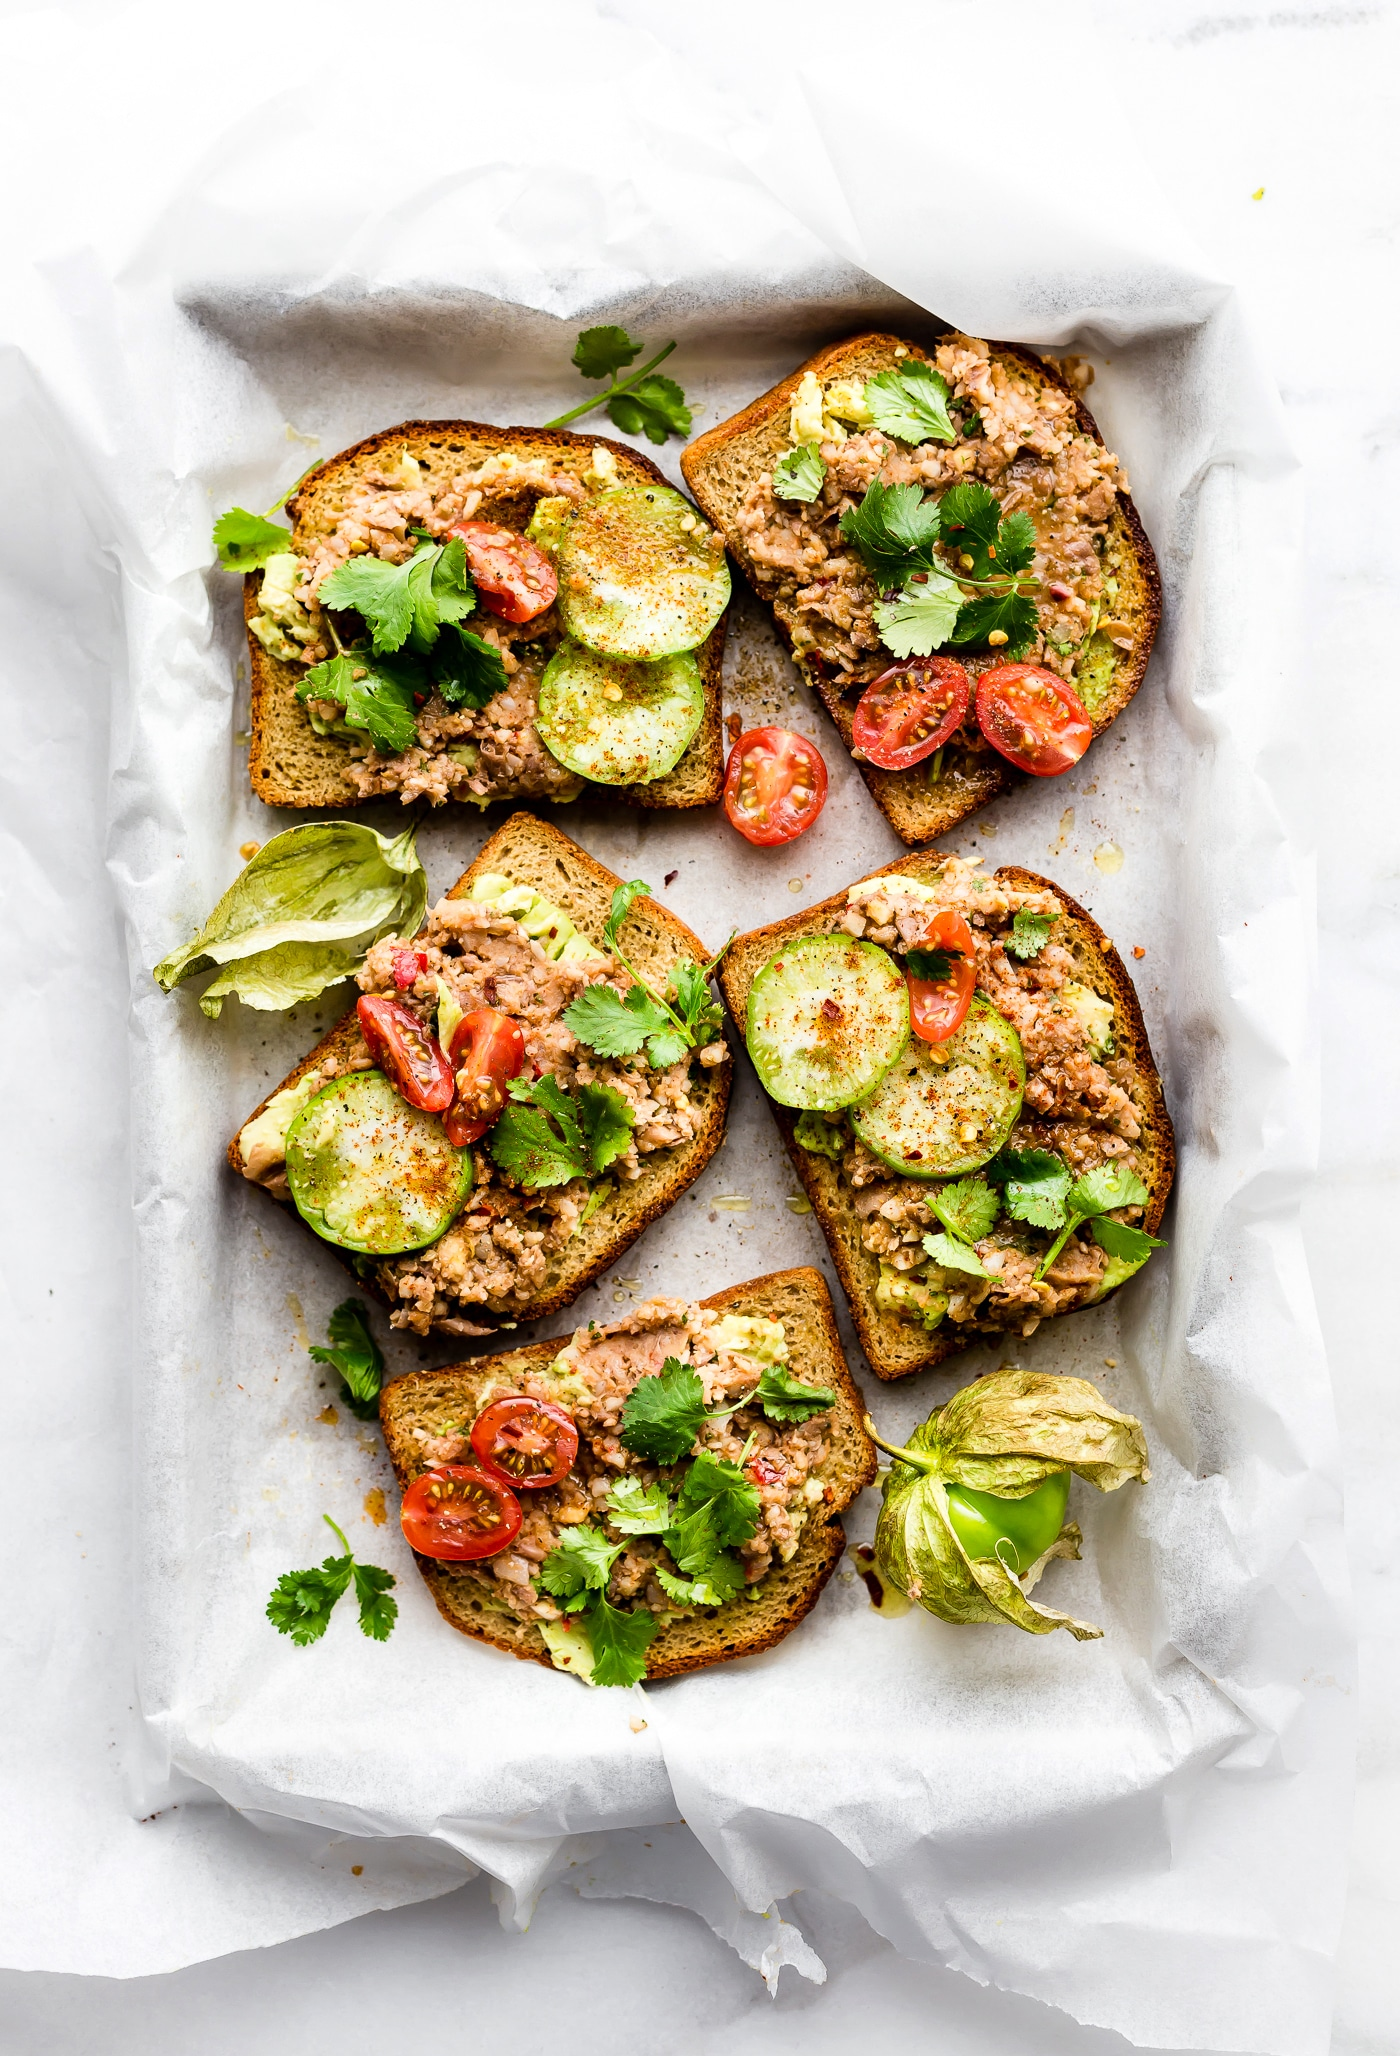 Smashed Mexican Beans Avocado Toast! Avocado Toast Recipes need a little upgrade. This Fully Loaded MEXICAN style avocado toast recipe is Gluten Free, Vegan Friendly loaded with Flavor!! A simple, yet spicy, meatless meal, breakfast, or even a healthy appetizer.